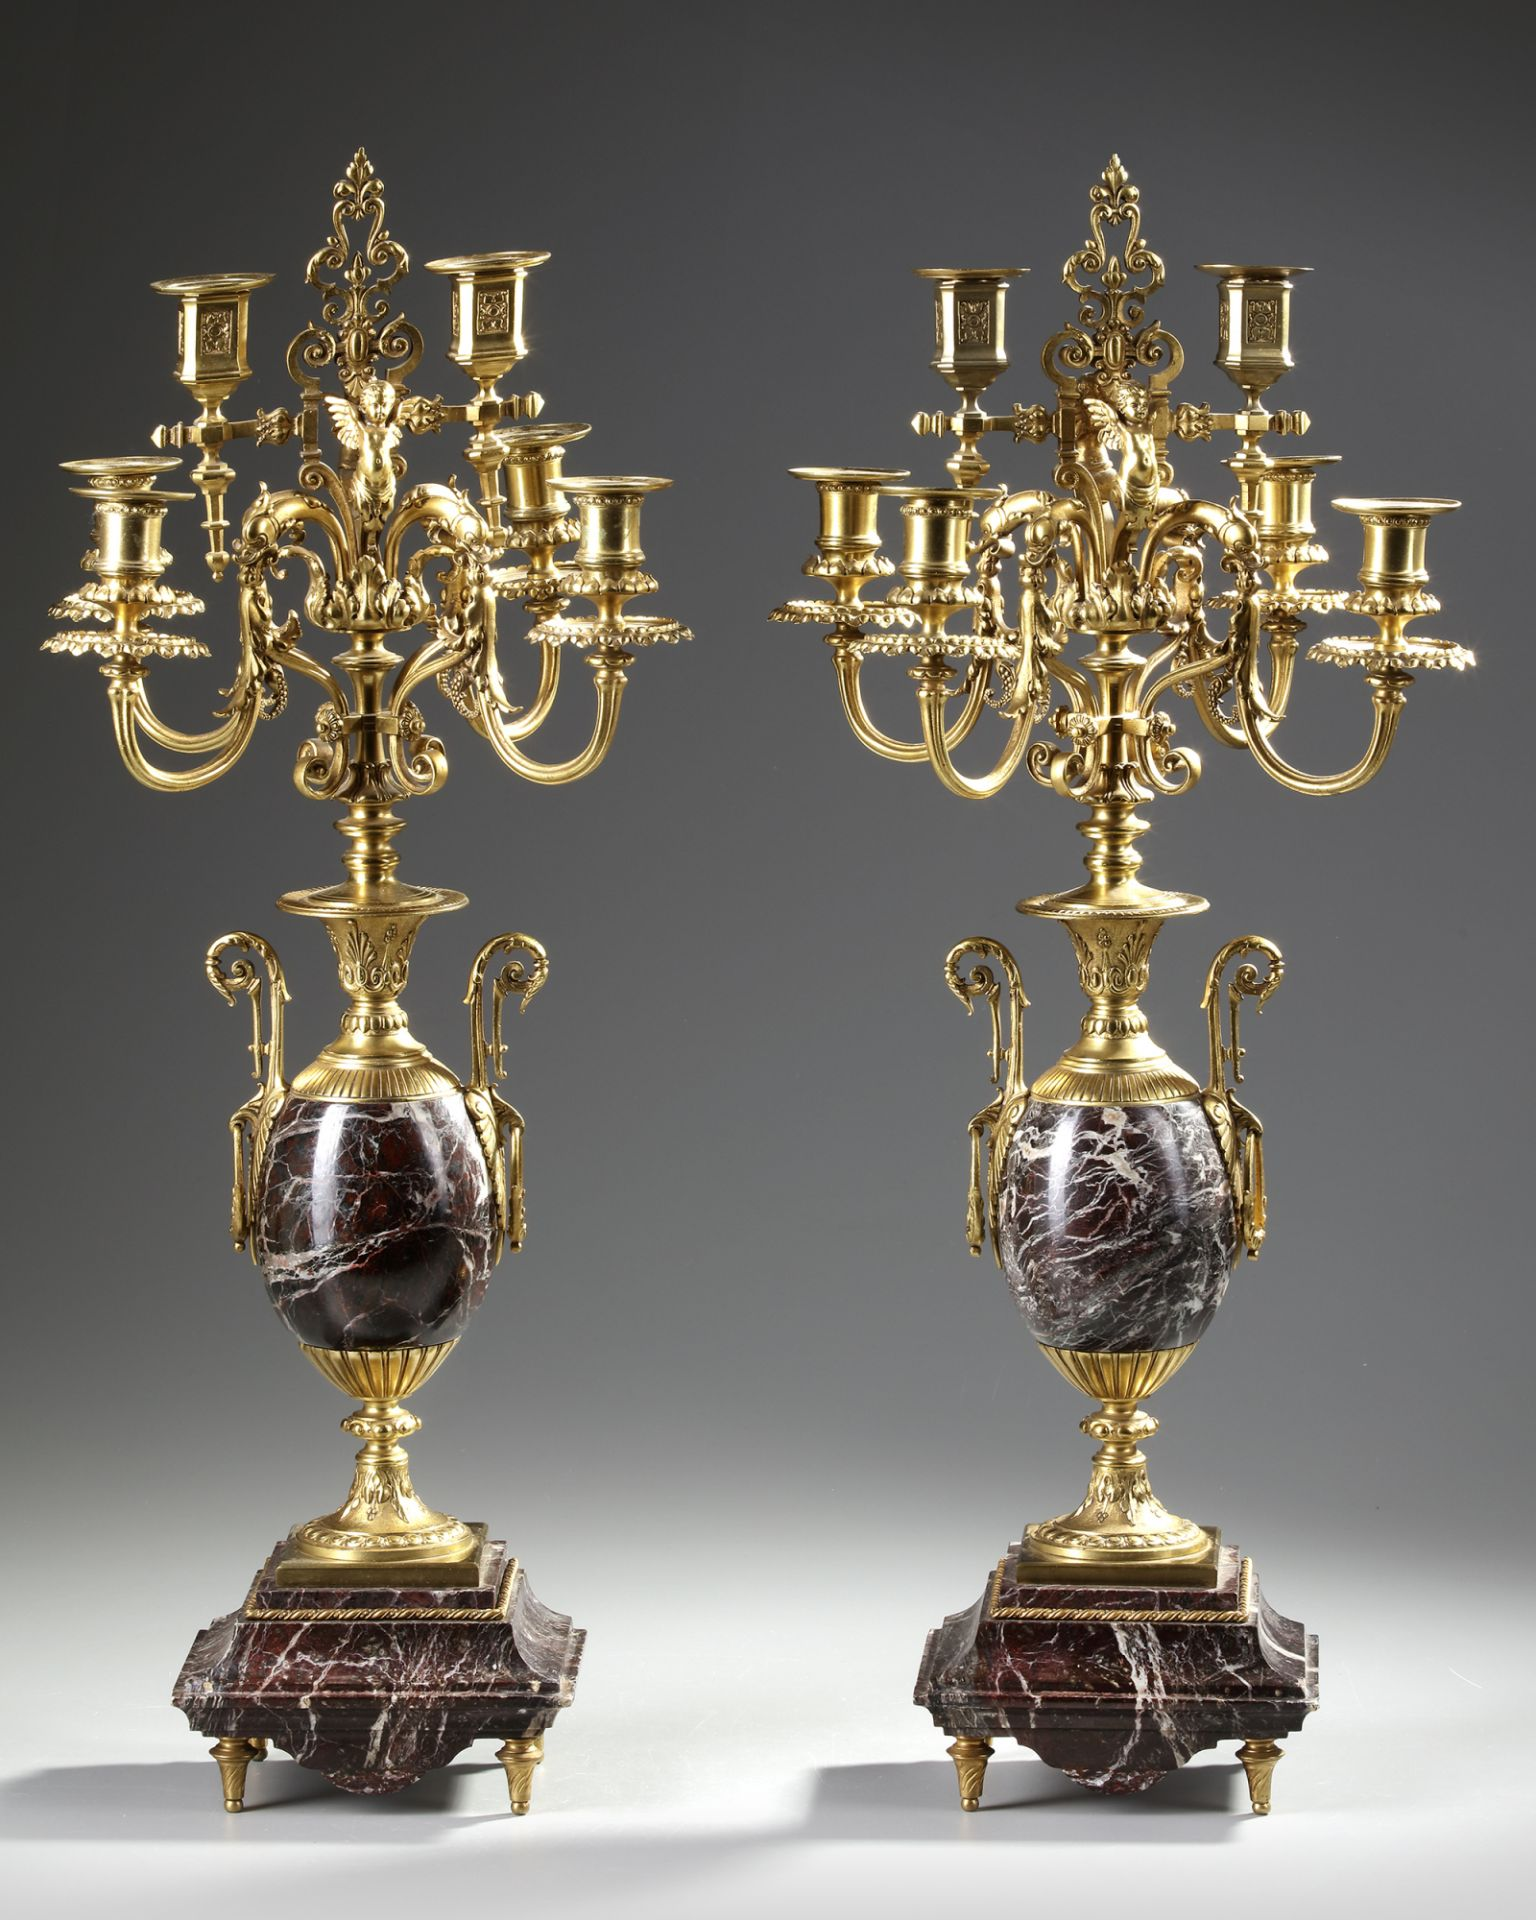 A PAIR OF FRENCH GILT CANDELABRAS.LATE 19TH CENTURY - Image 3 of 3